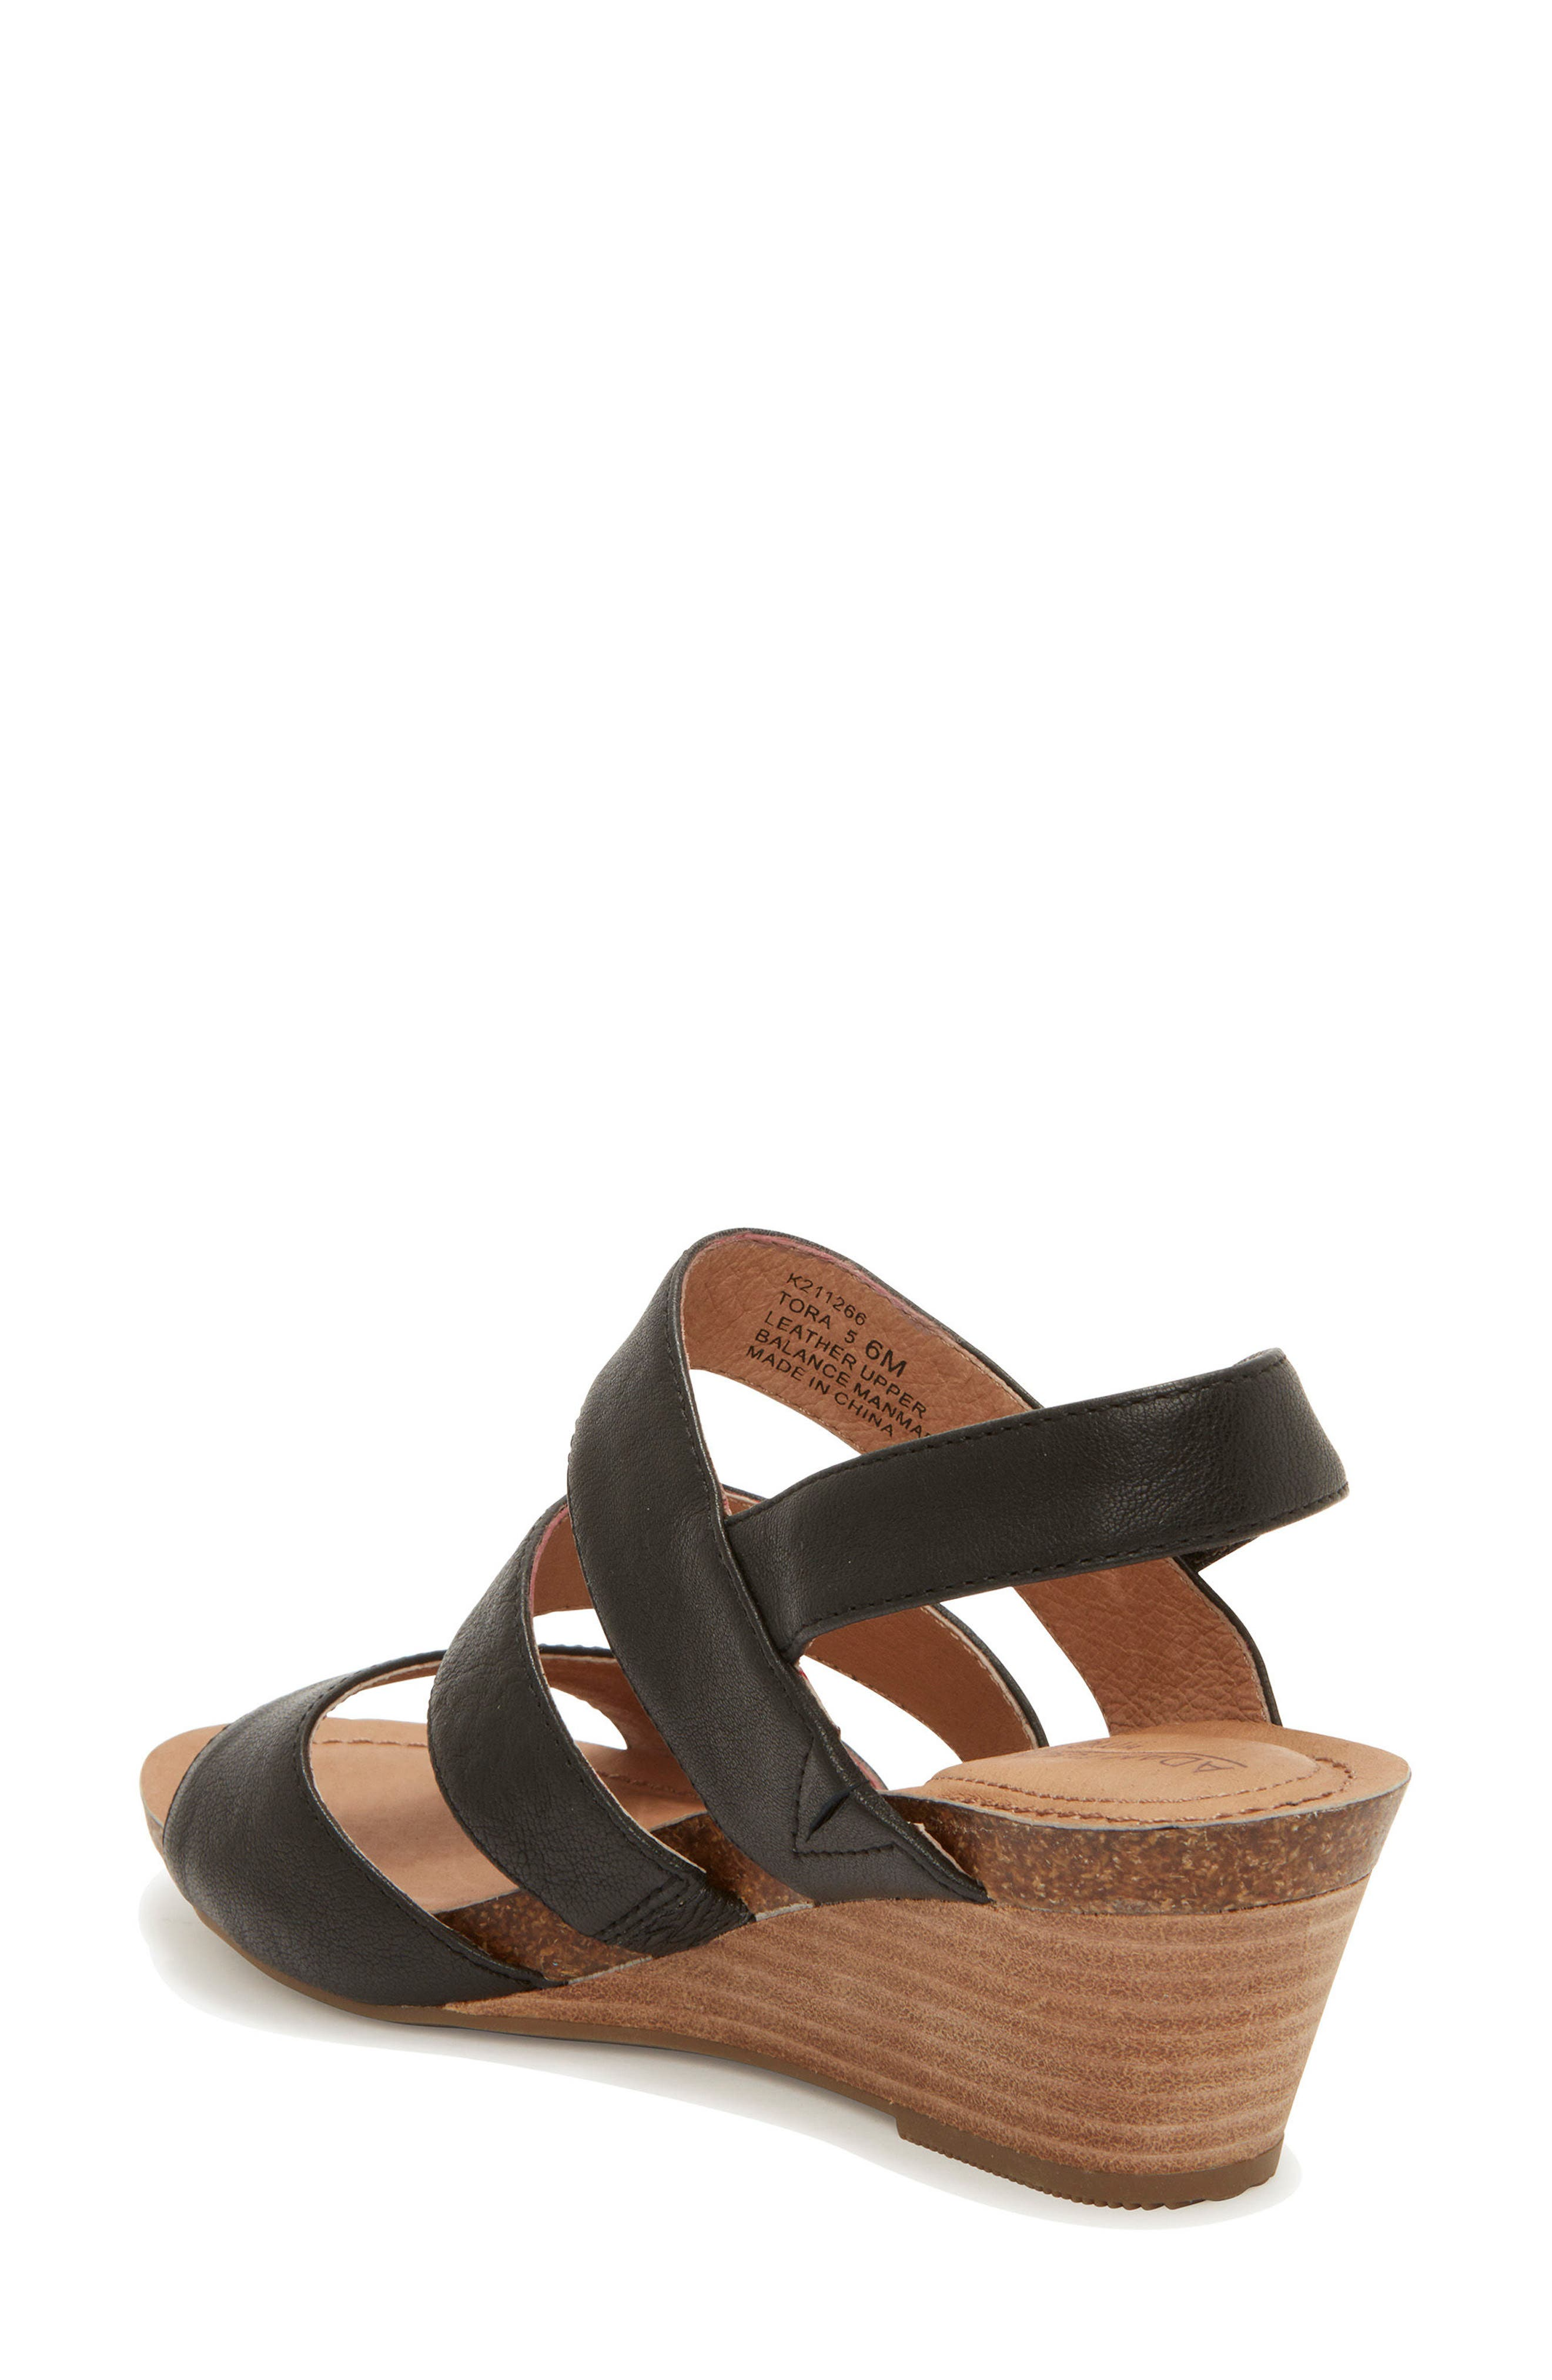 Adam Tucker Tora Wedge Sandal,                             Alternate thumbnail 3, color,